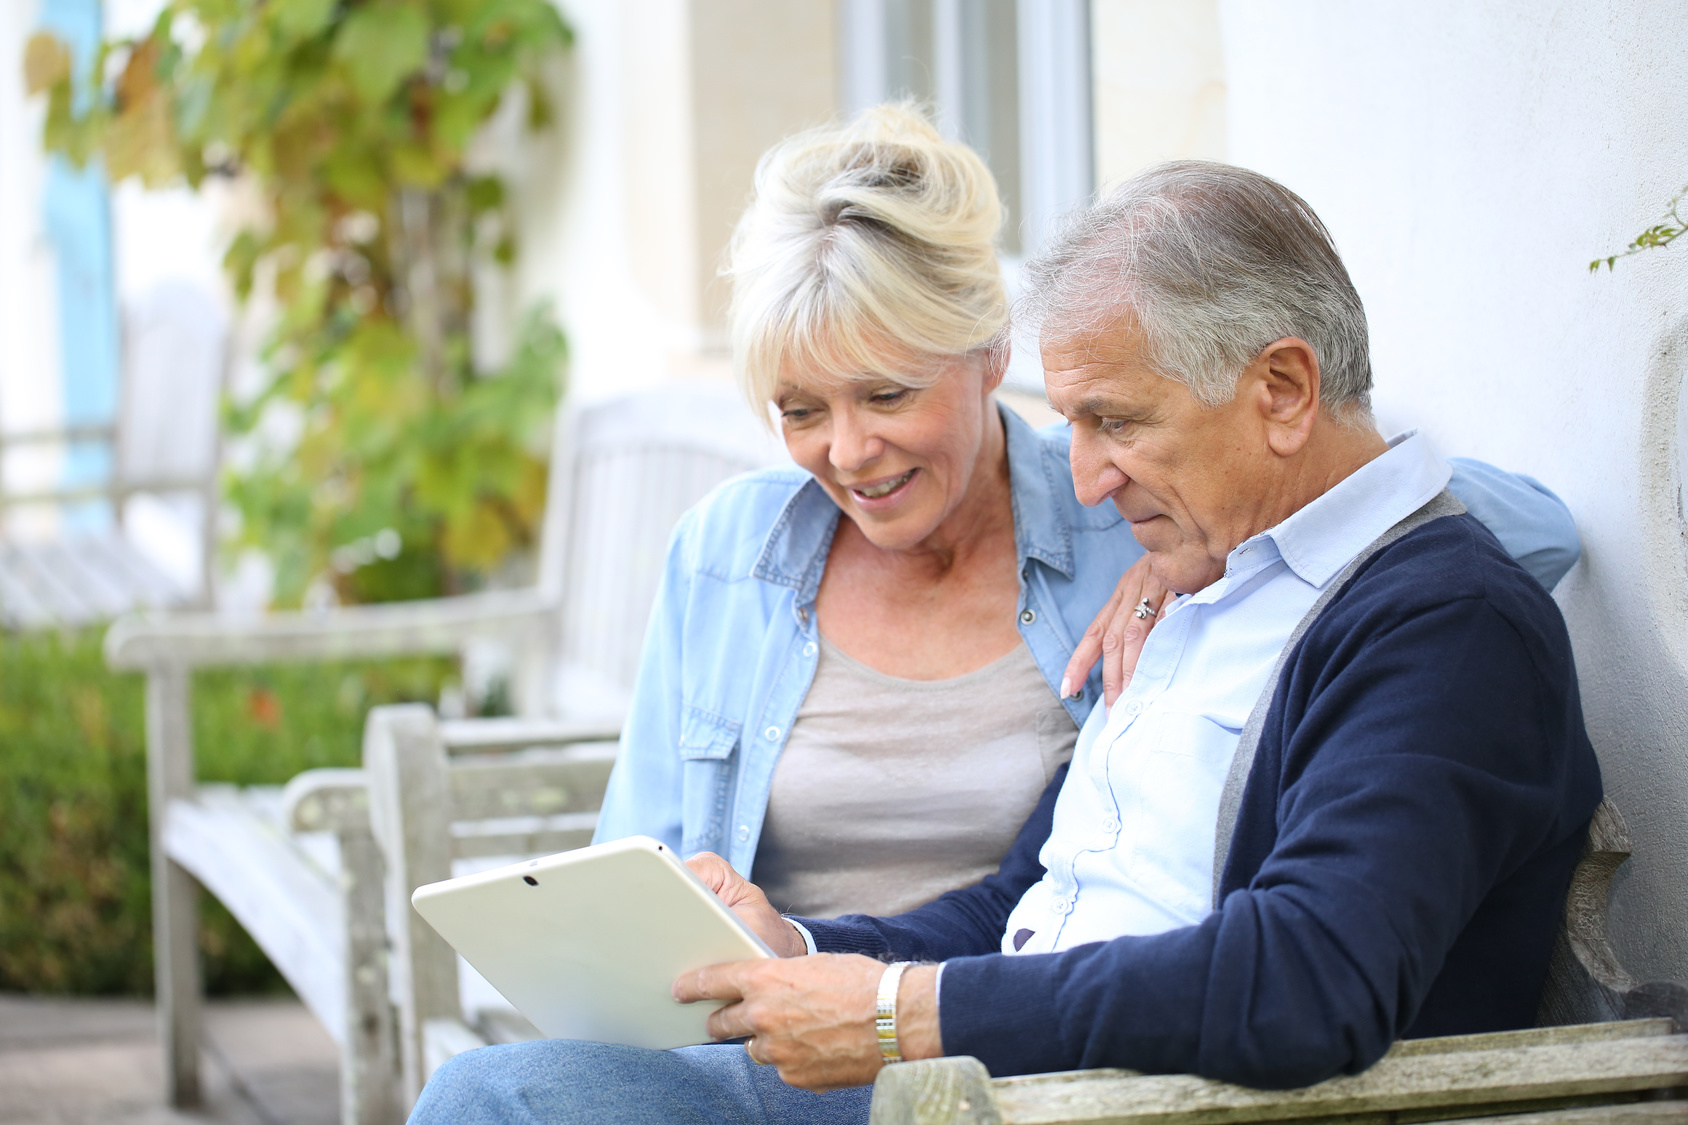 Senior couple | Health information at Urology Associates